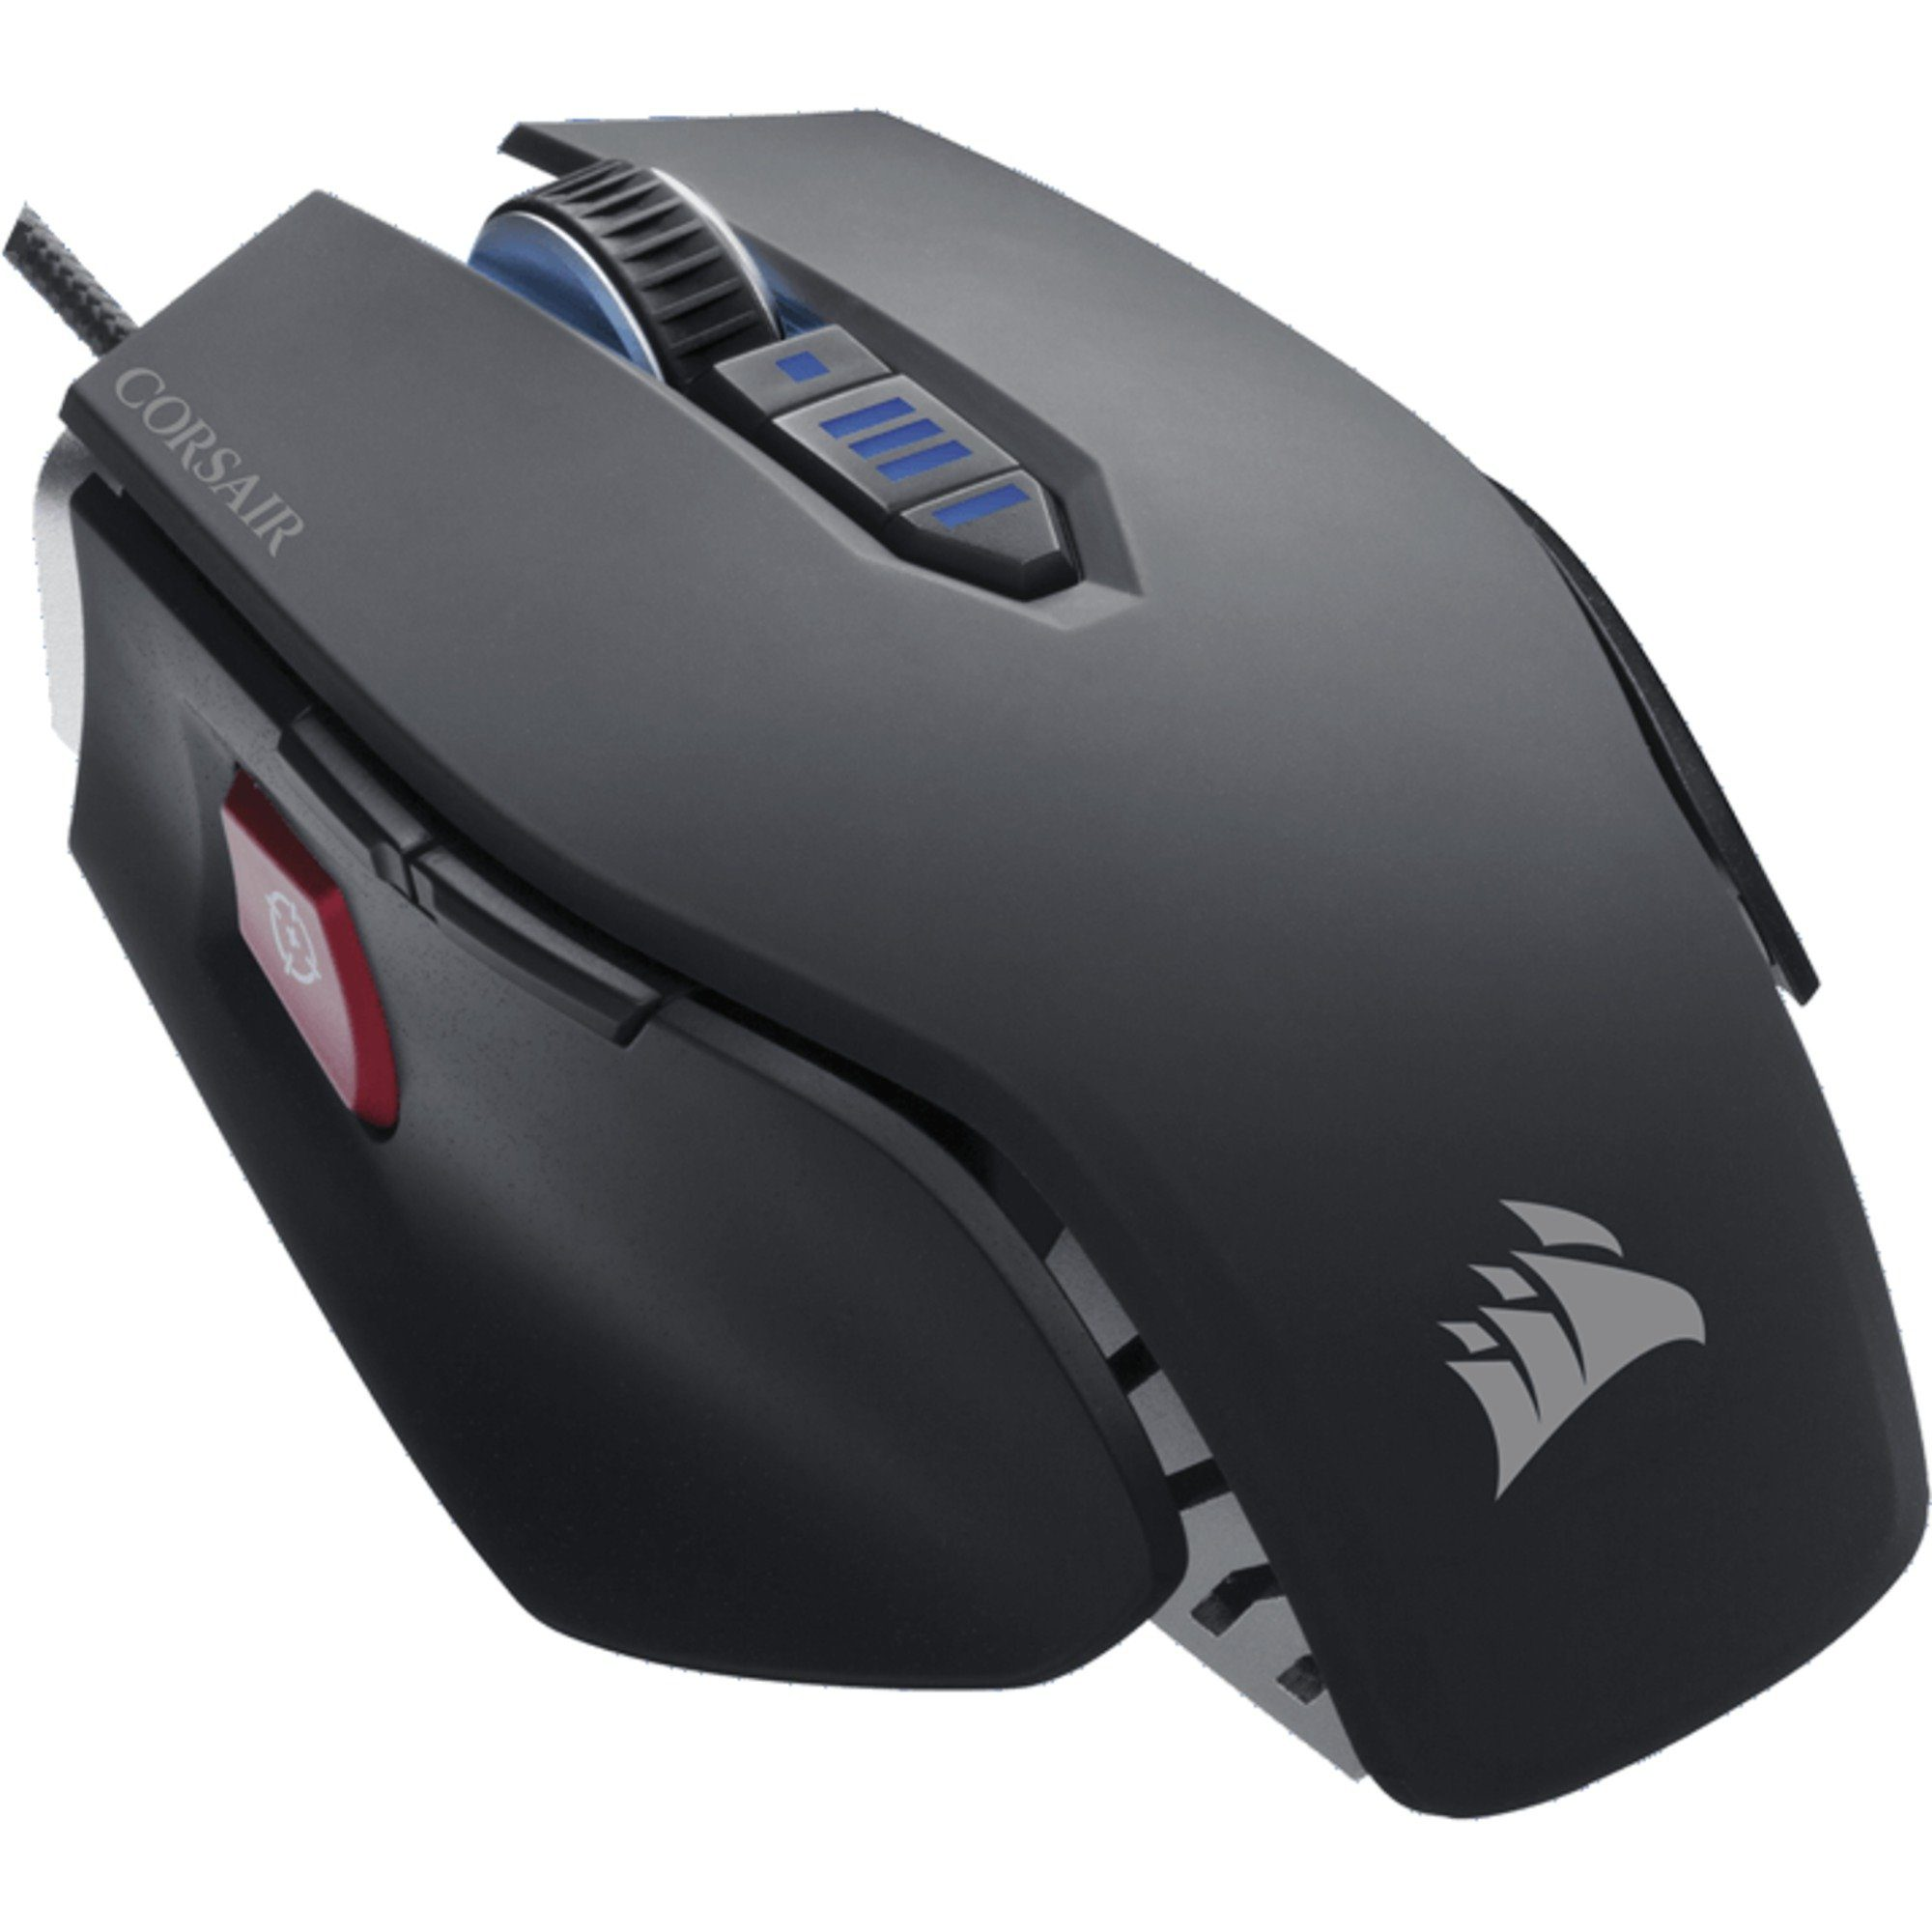 Corsair Maus »Gaming M65 FPS«